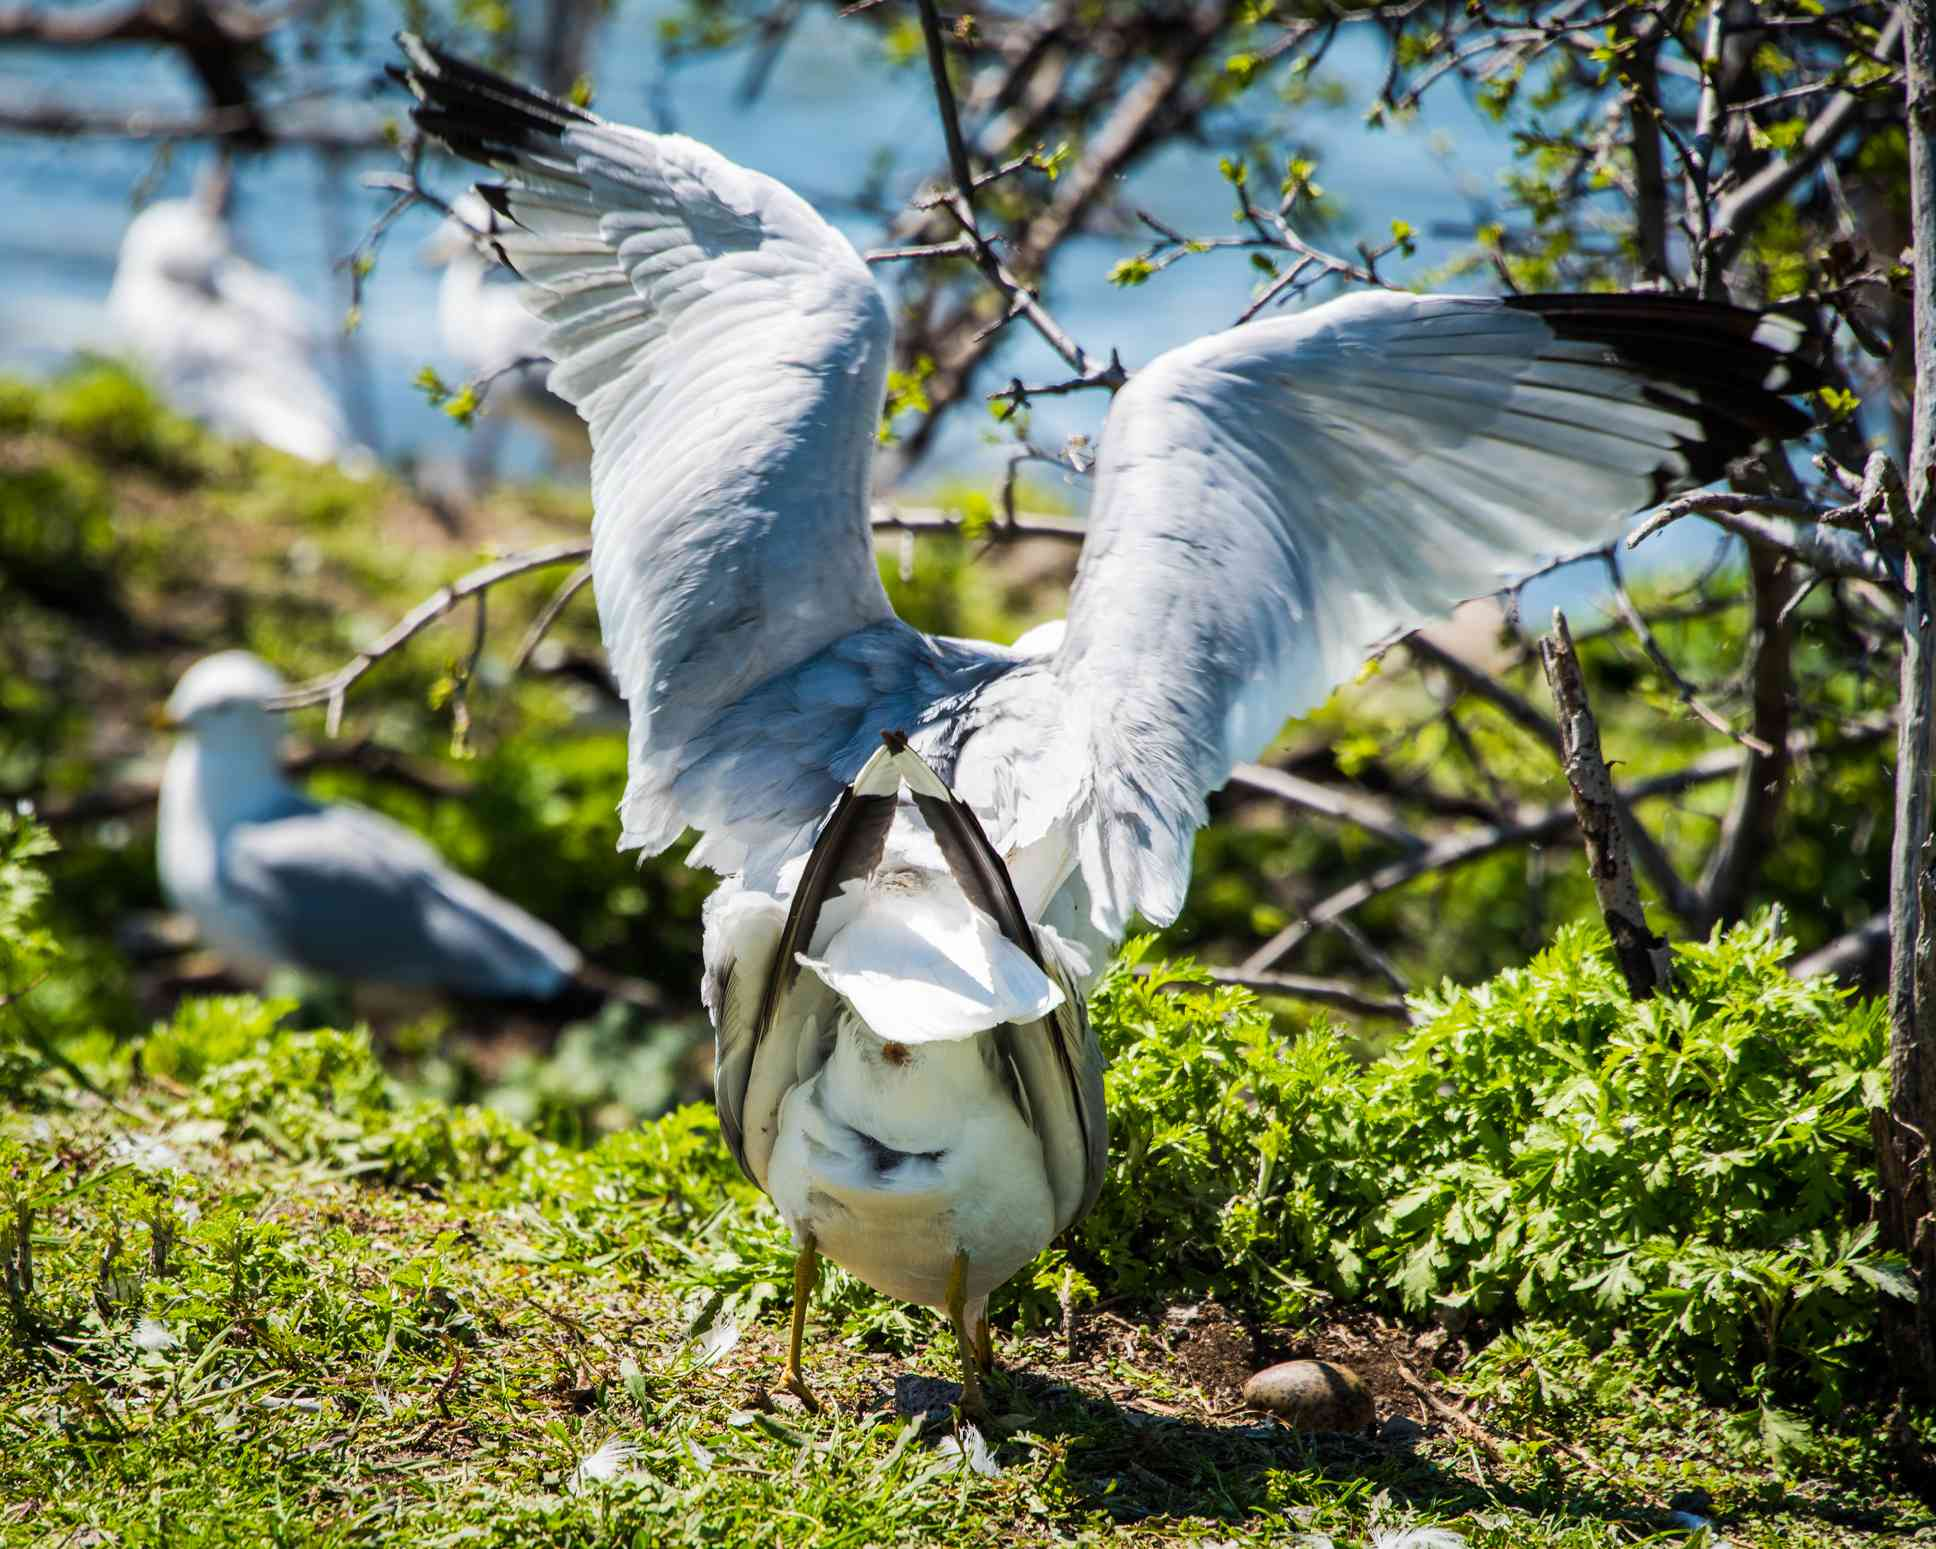 hind view of a seagull showing the cloaca